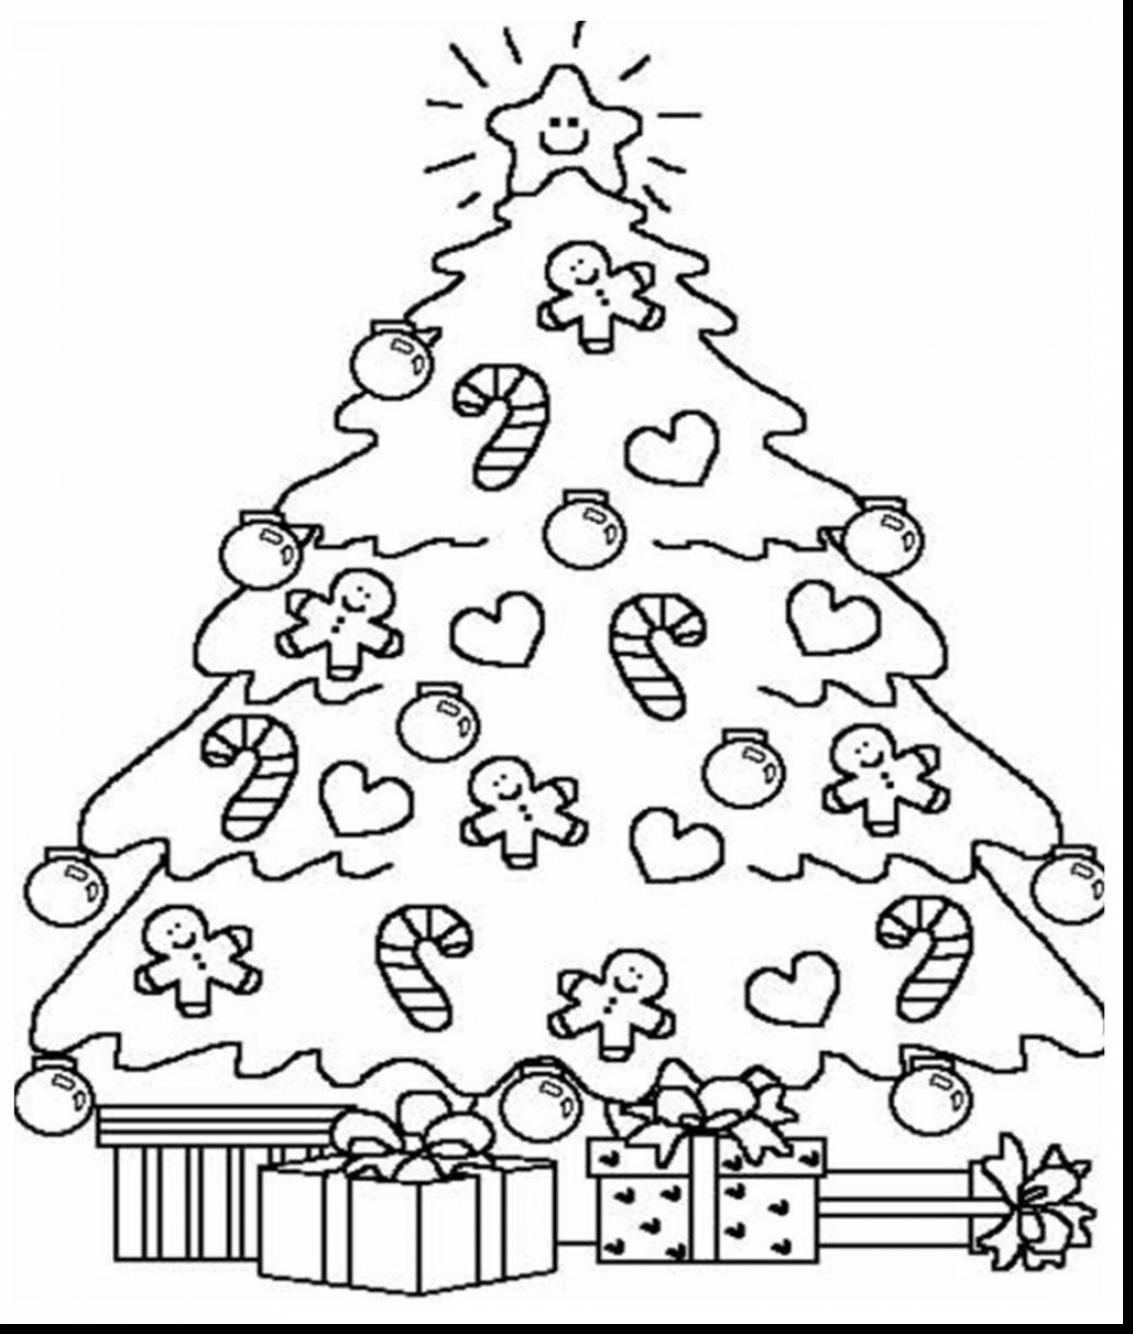 1133x1334 New Mosaic Coloring Pages For Christmas Christmas Coloring Pages